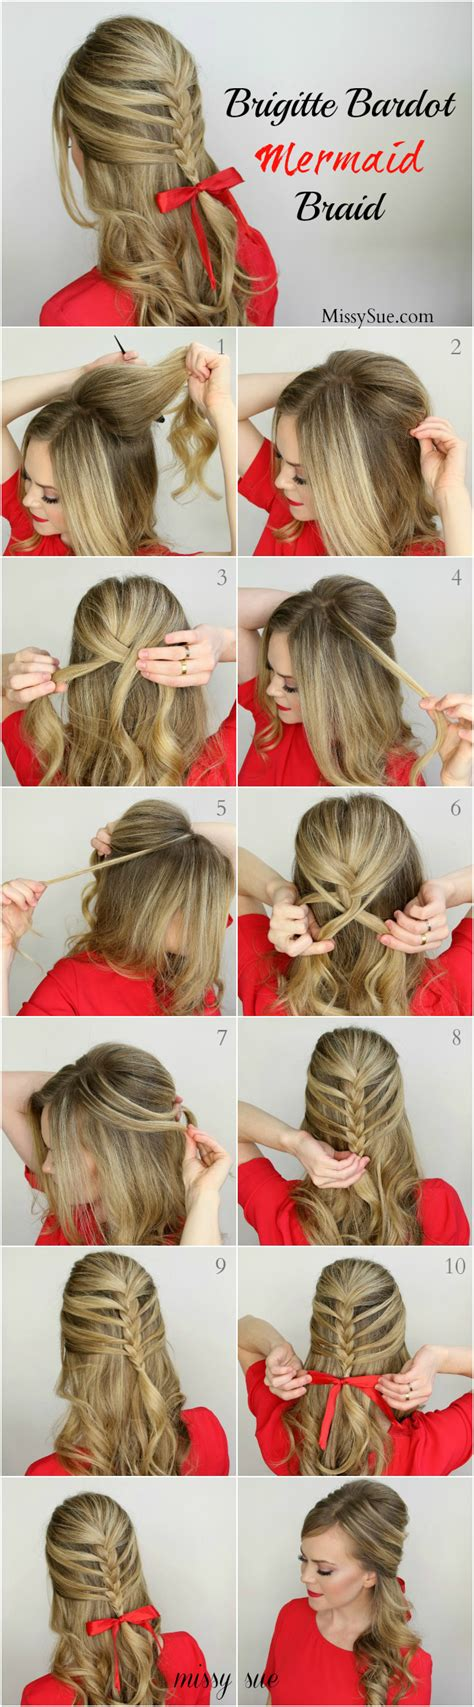 diy hairstyles for christmas diy brigitte bardot mermaid braid pictures photos and